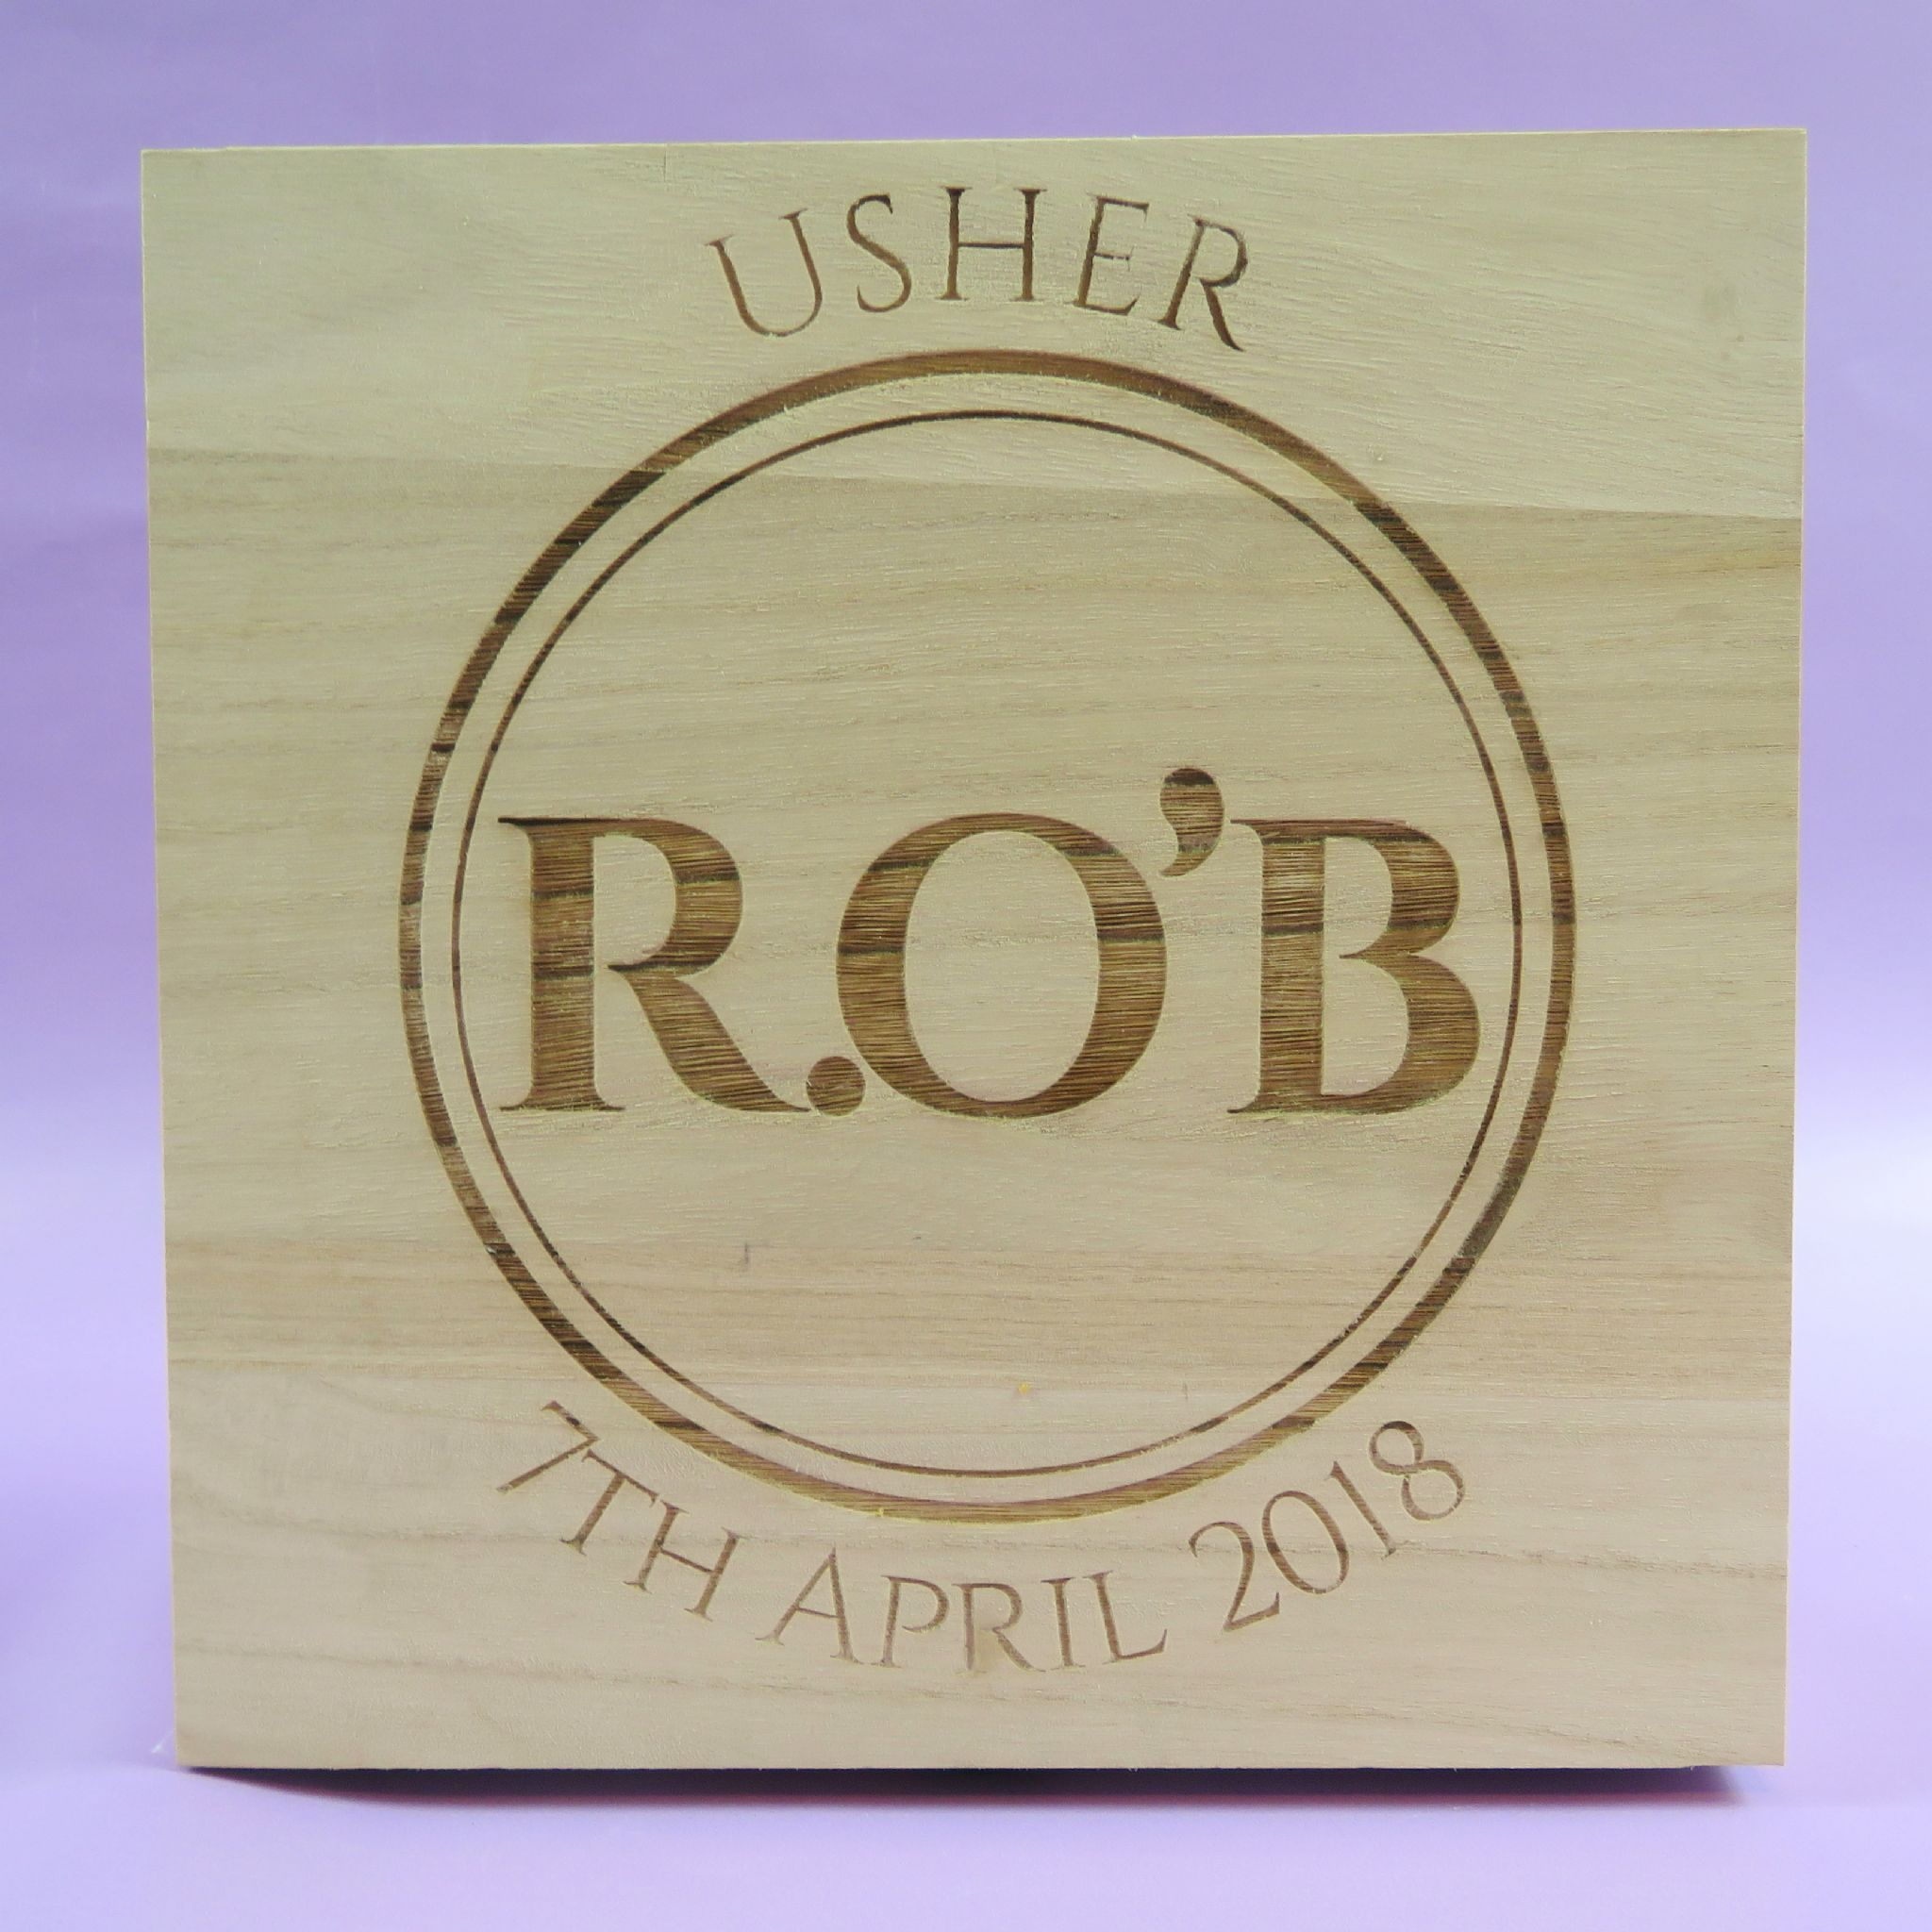 Best Man Wedding Gift Ideas: Wooden Best Man Box Personalised Engraved Box Bestman Gift